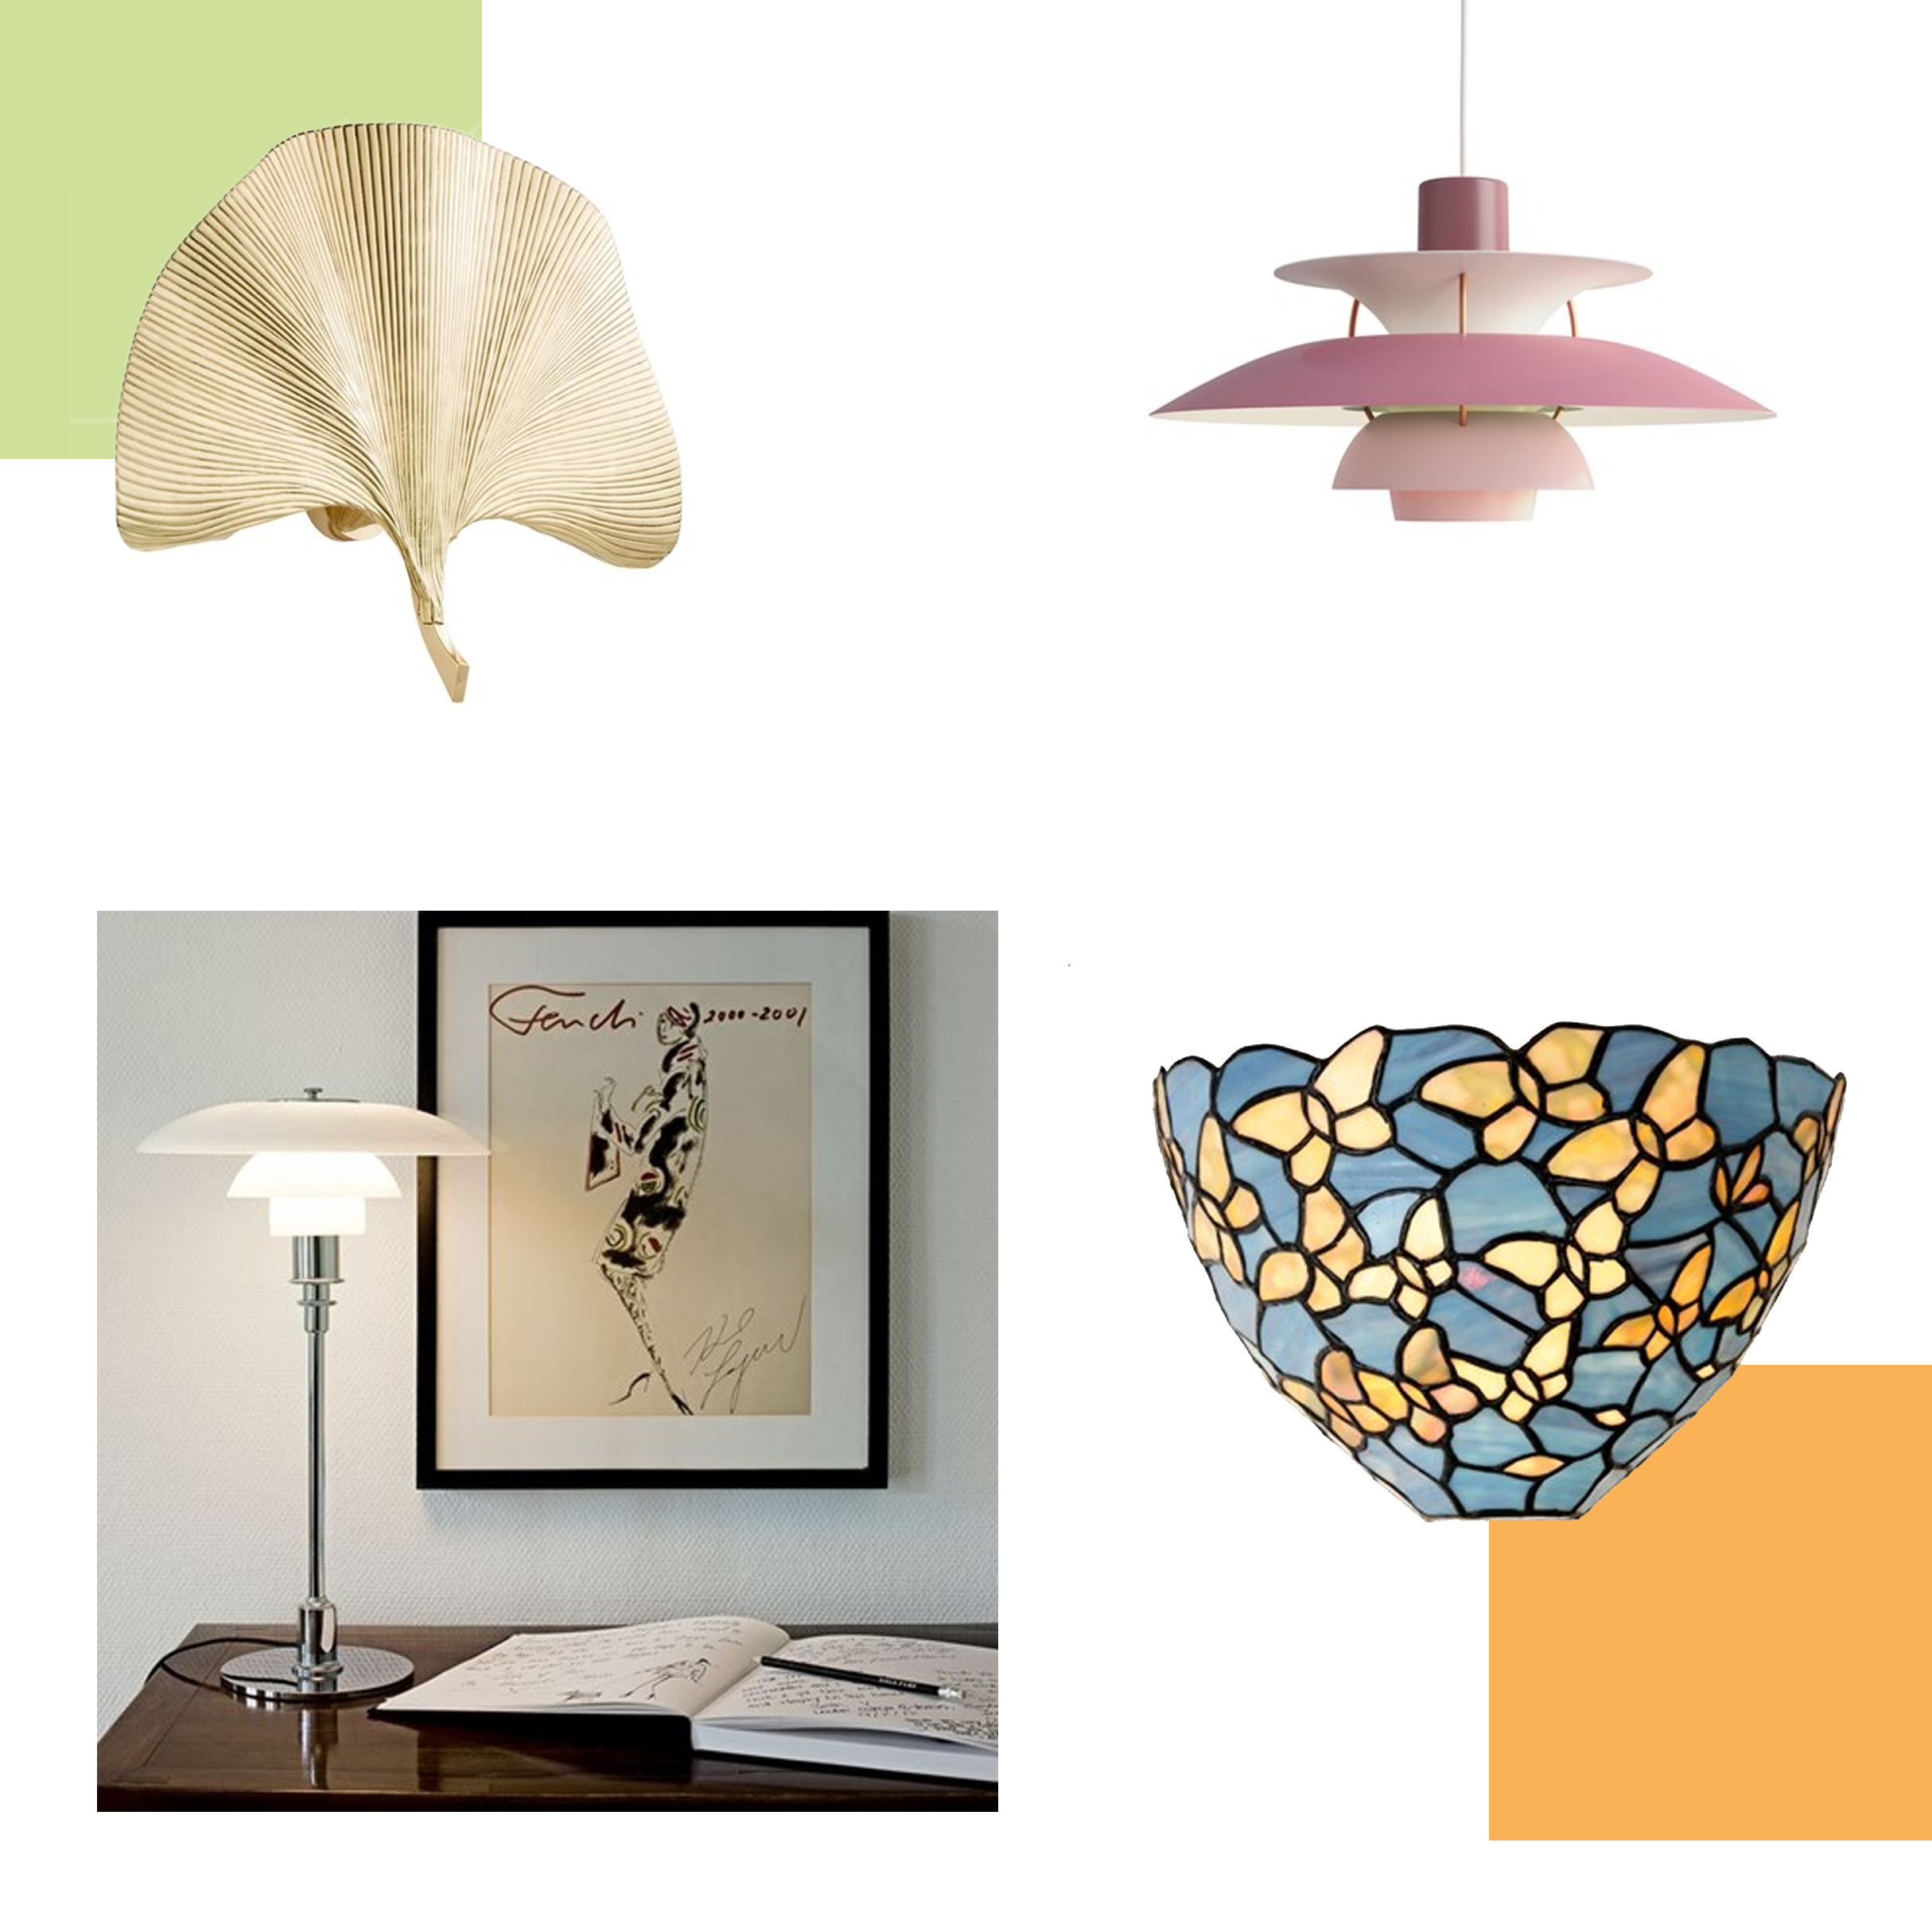 Golden Ginkgo Leaf Wandlamp, Louis Poulsen PH 5 Hanglamp Rose, Louis Poulsen PH 3/2 Tafellamp, Tiffany Wandlamp Fly Away